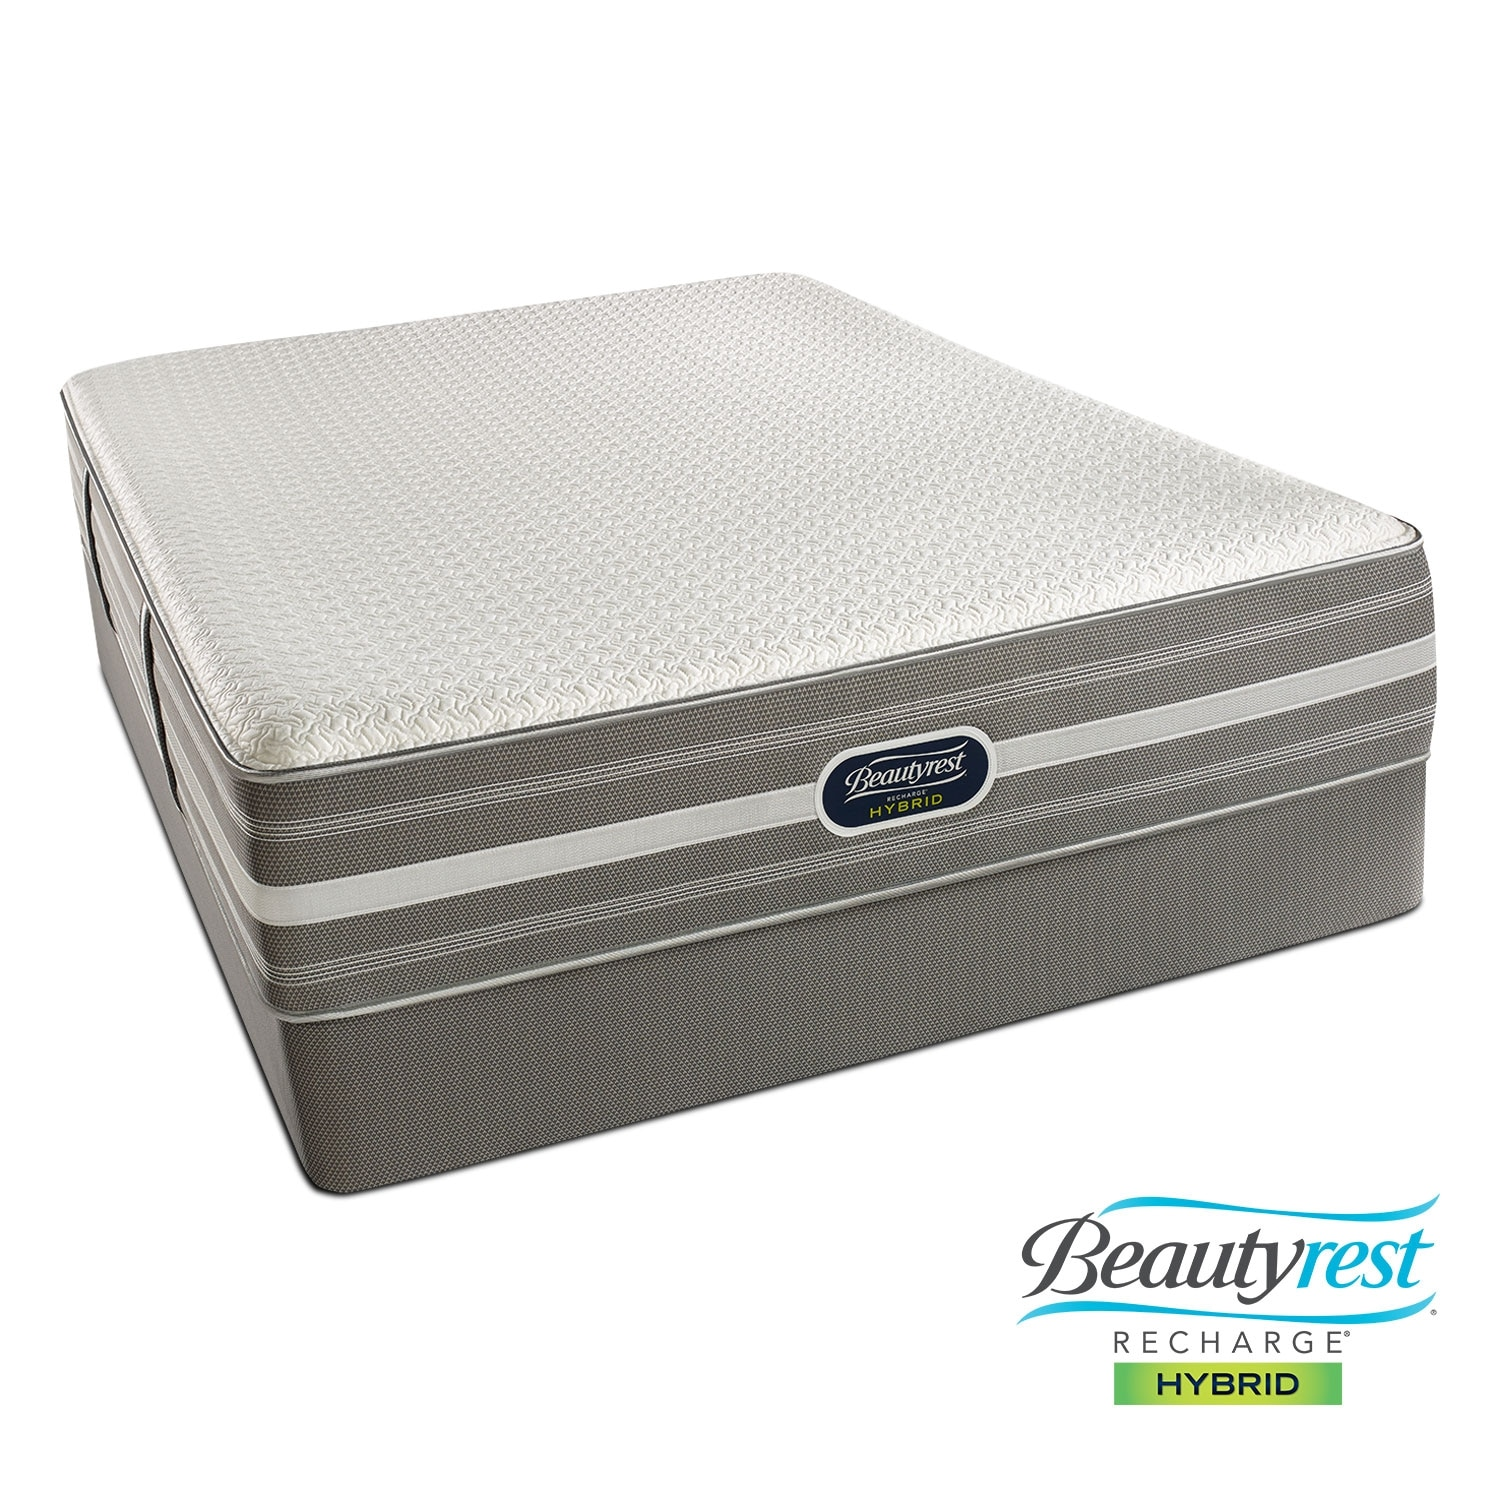 Mattresses and Bedding - Hopewell Luxury Firm Queen Mattress/Split Foundation Set